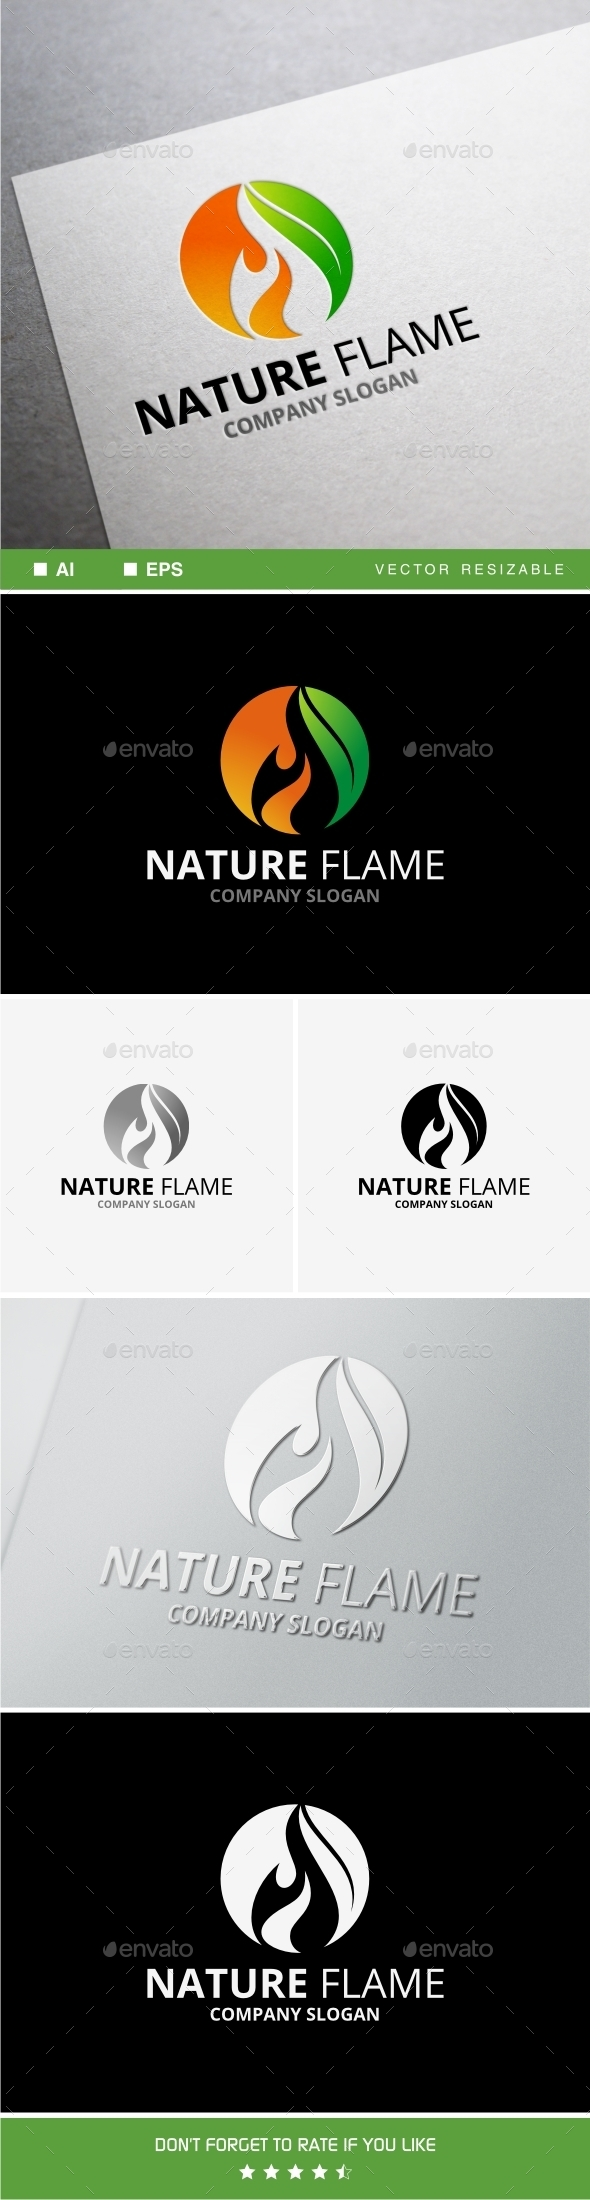 GraphicRiver Nature Flame 10191009